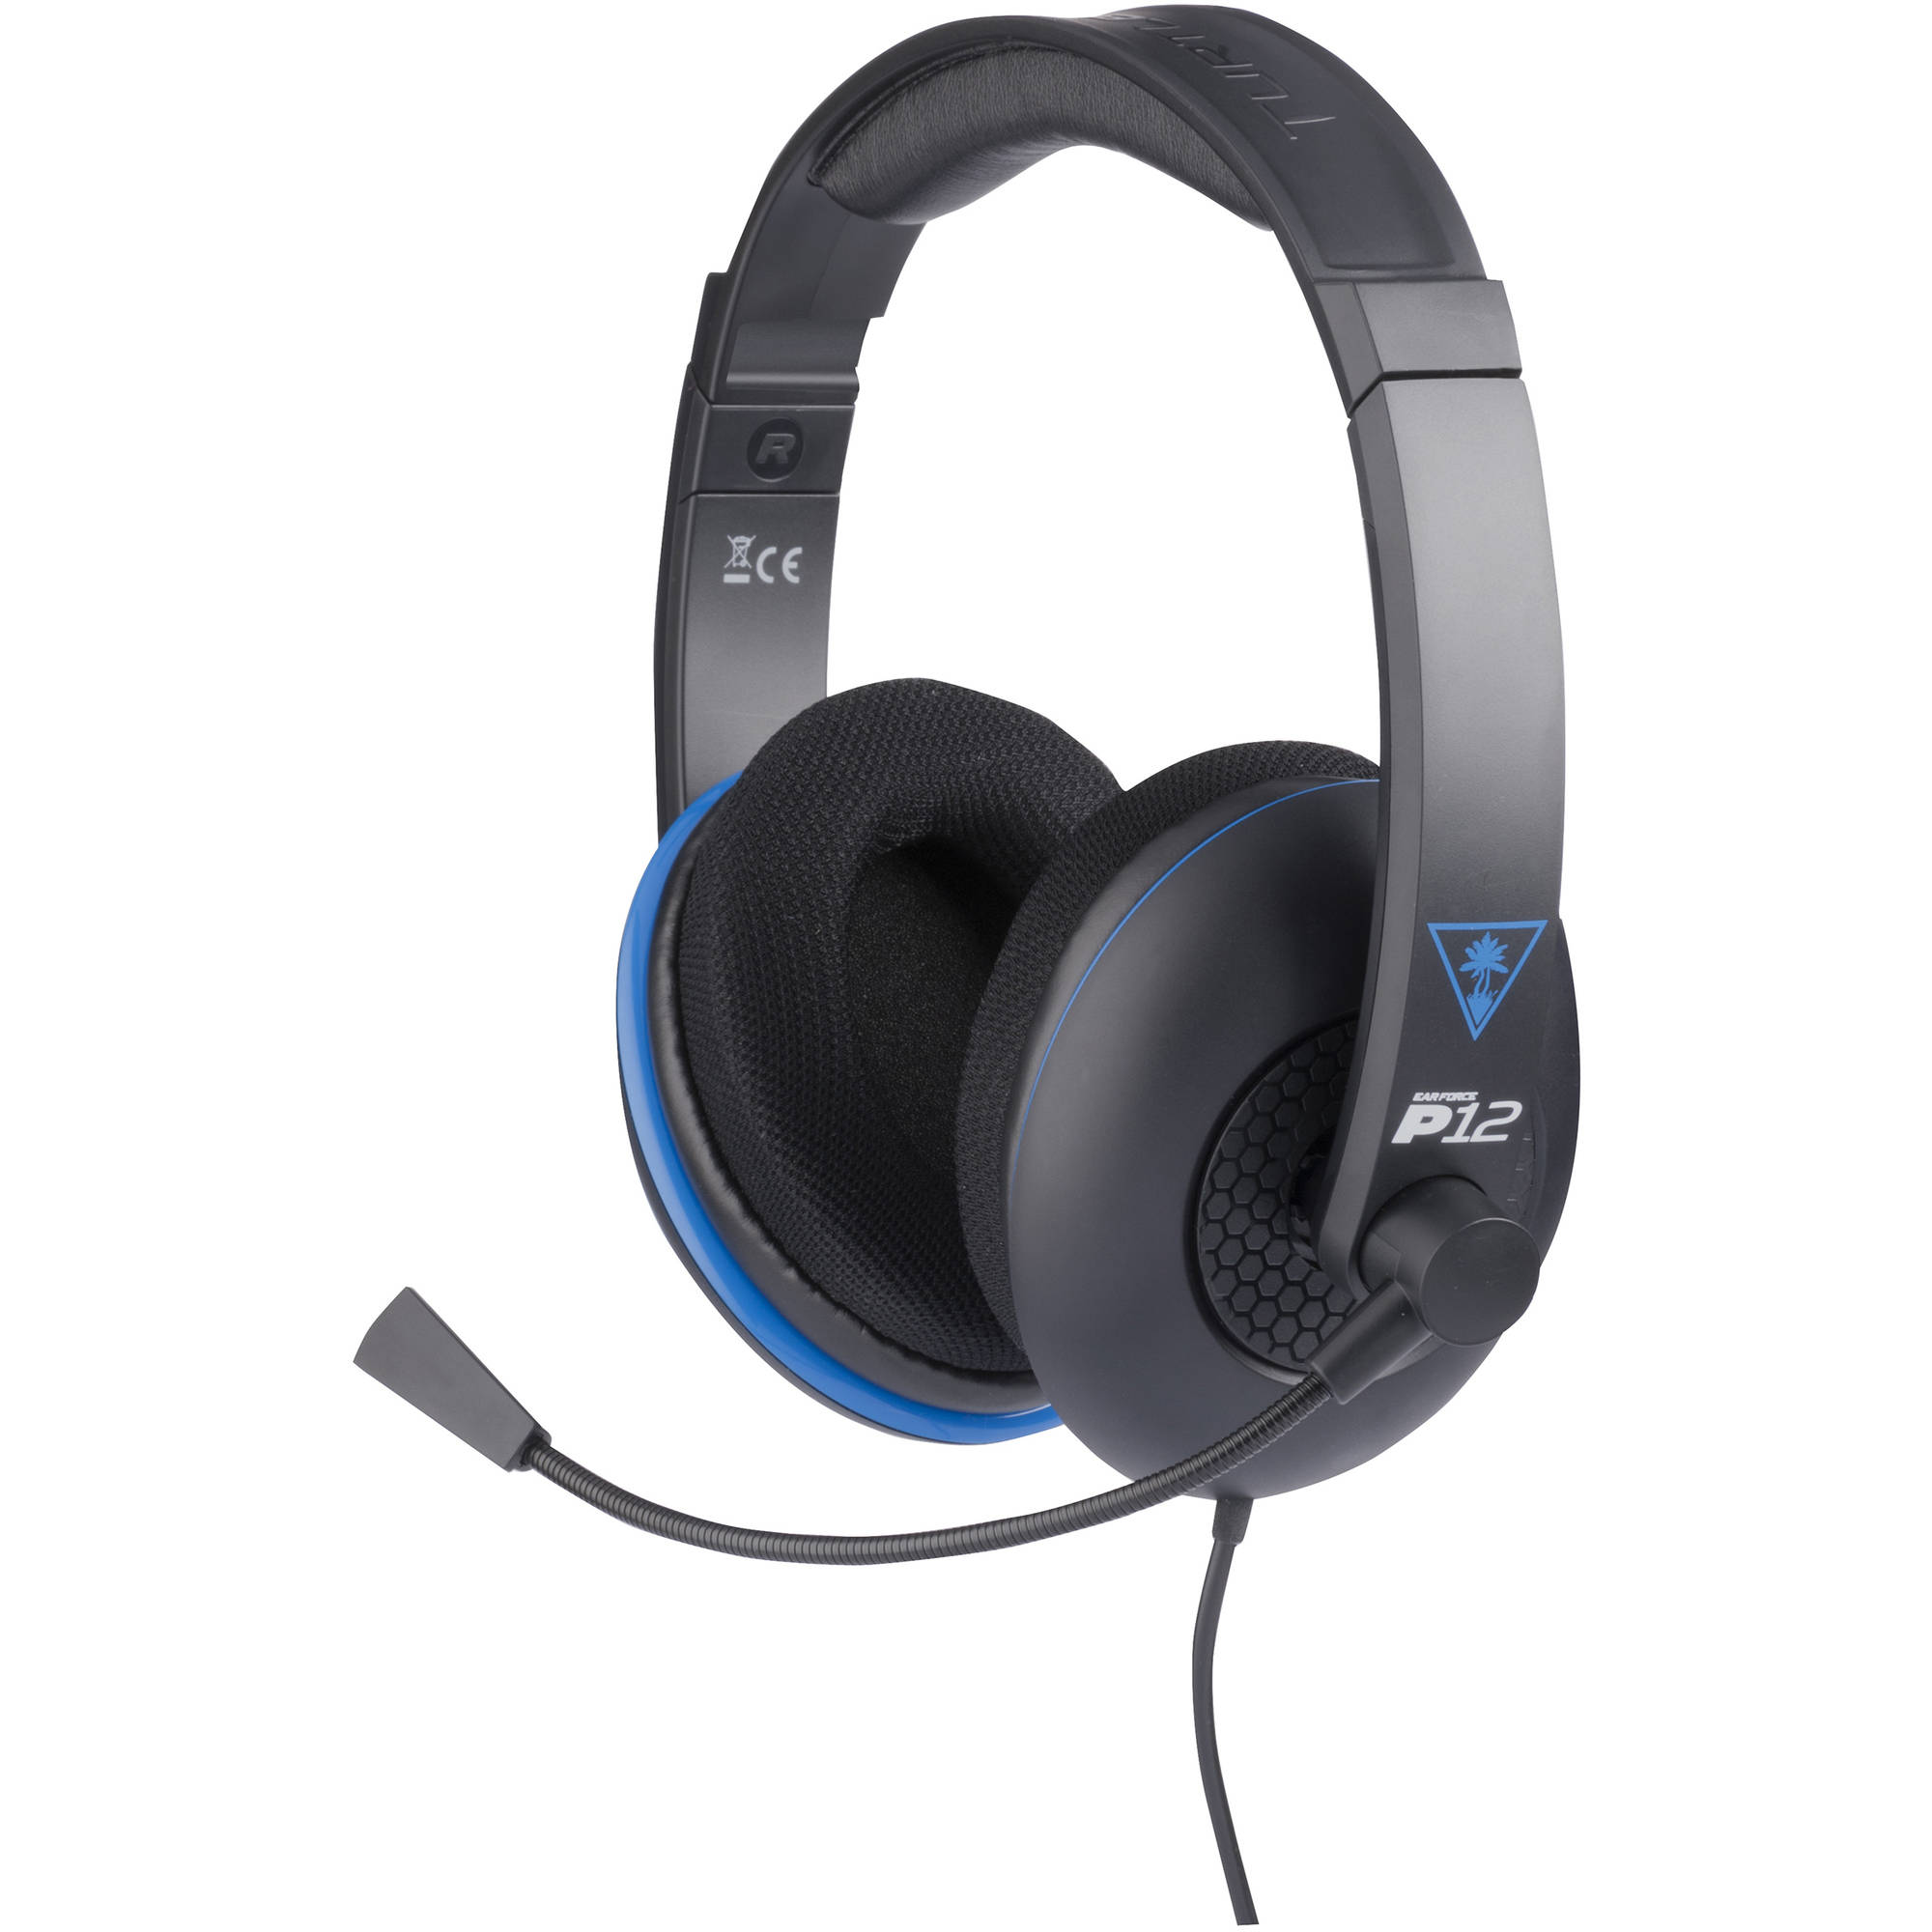 Refurbished Turtle Beach P12 Gaming Headset for PlayStation 4